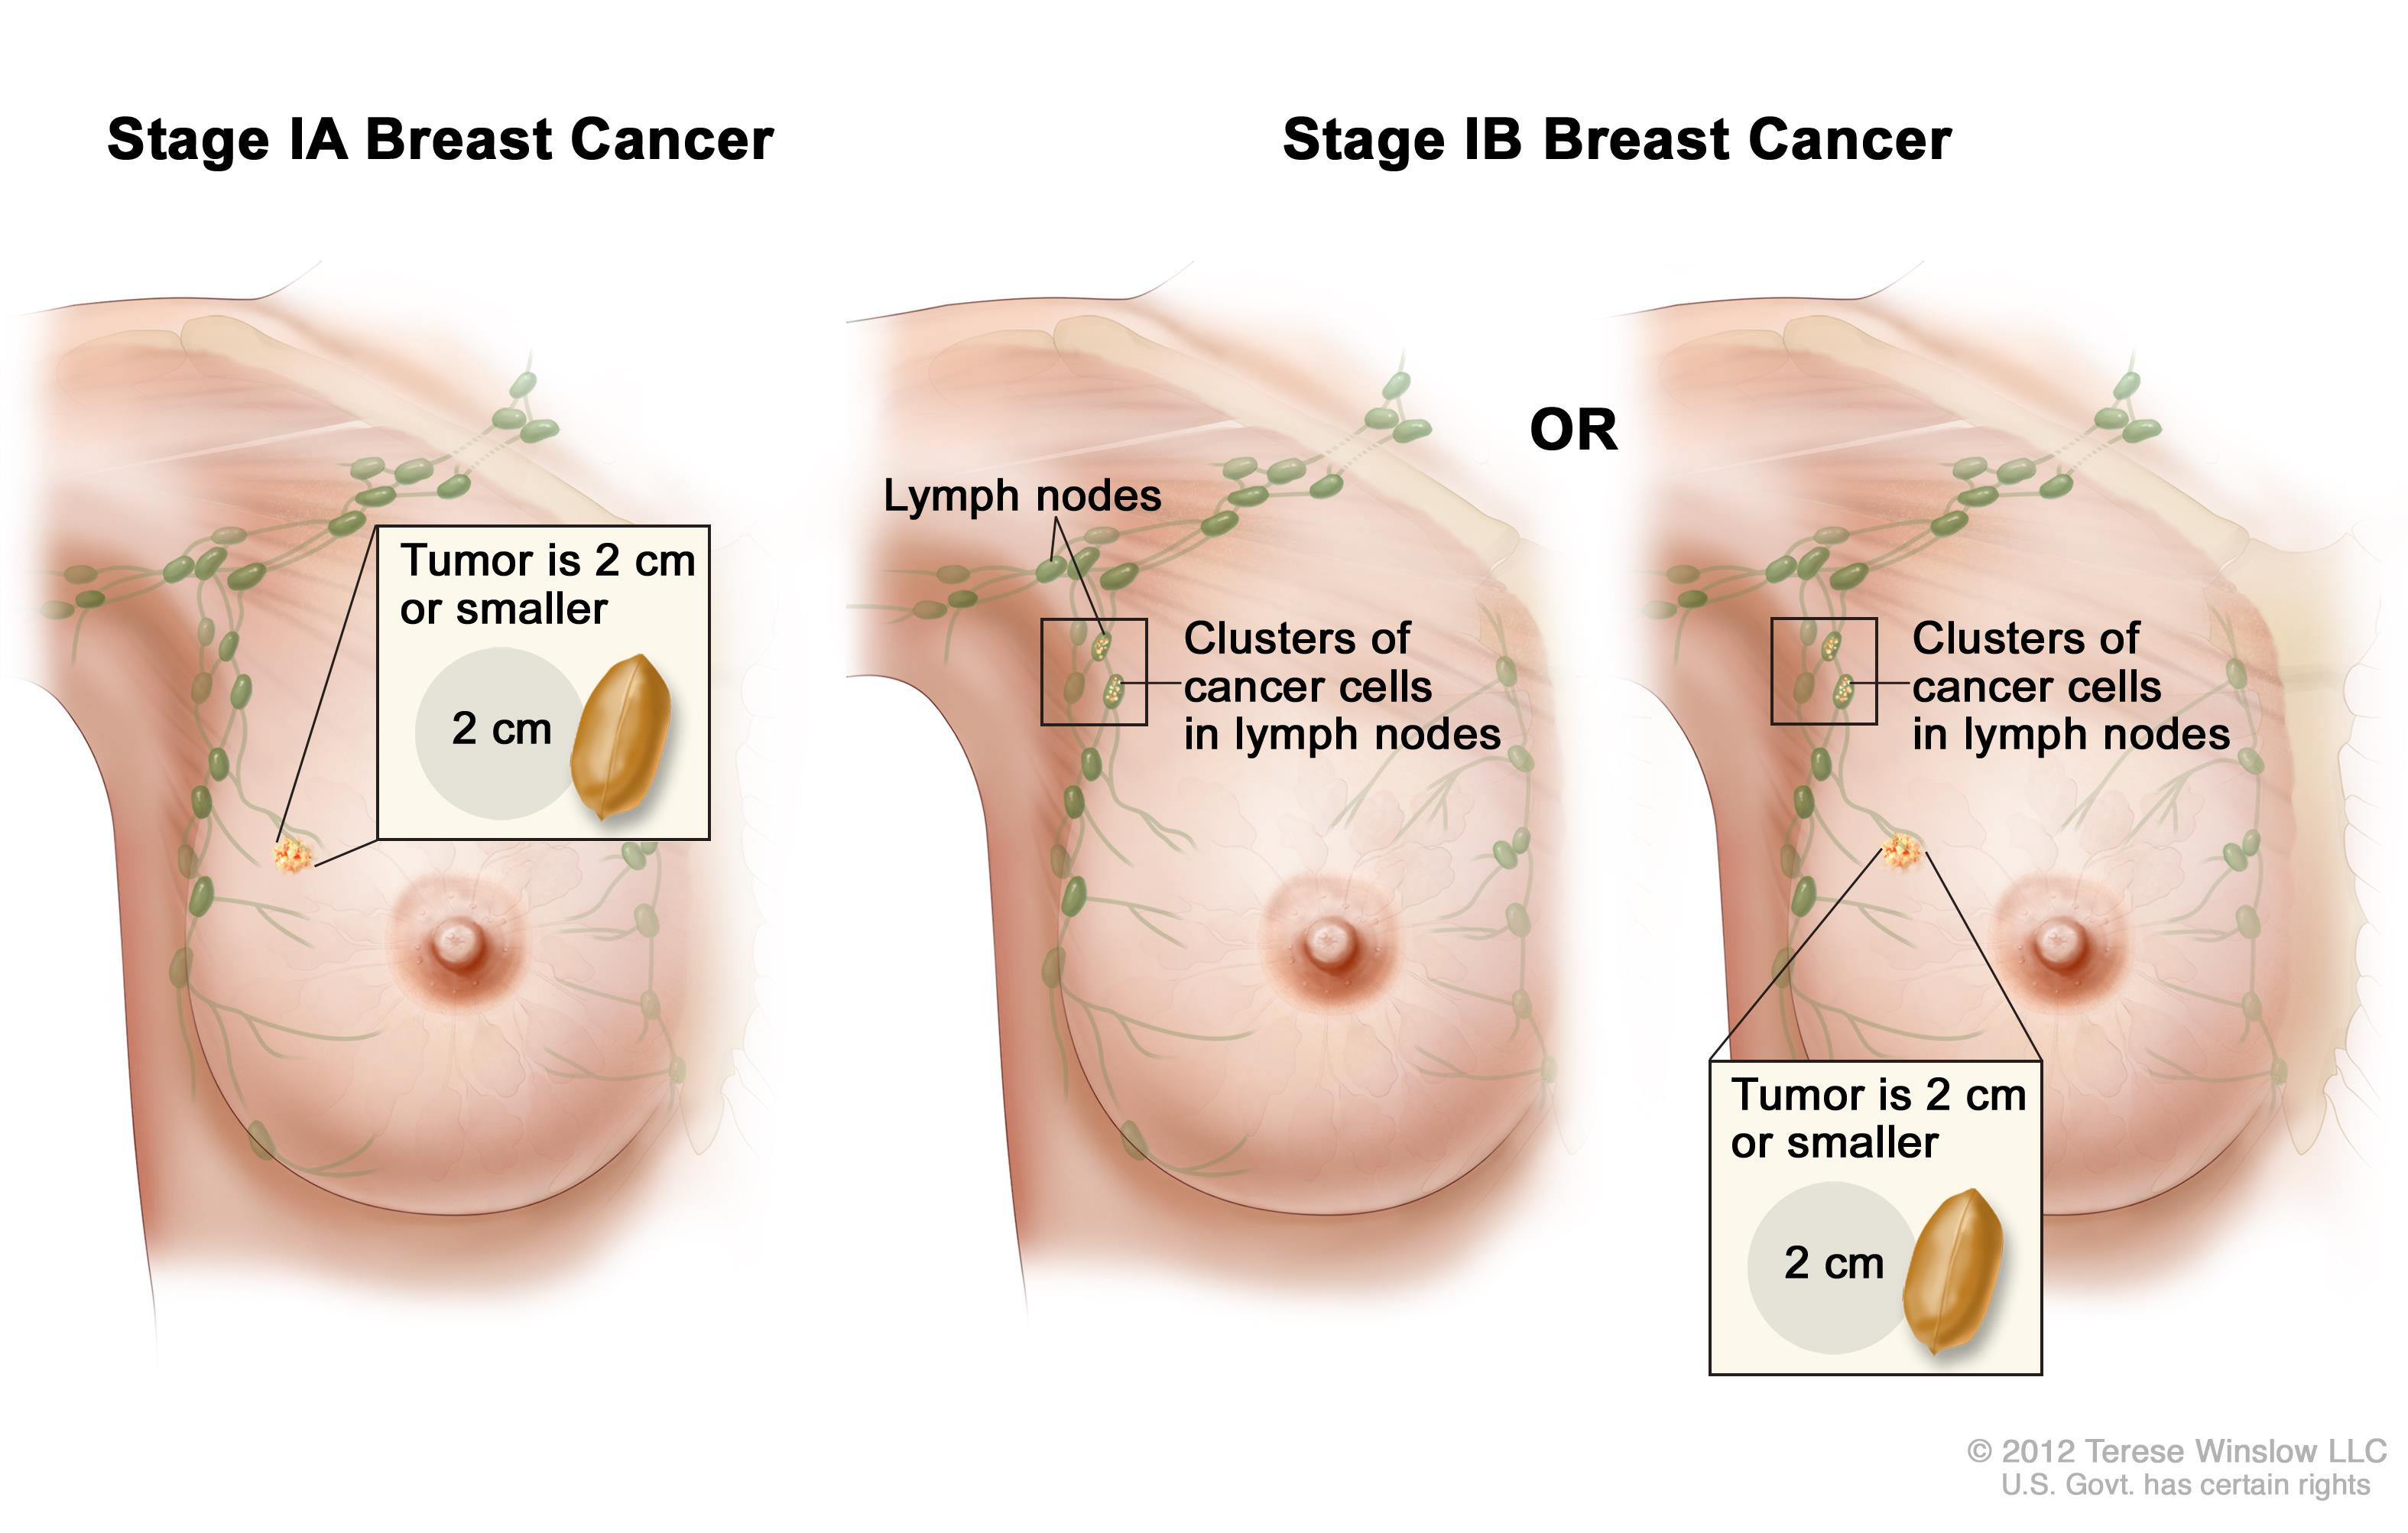 How many stages in breast cancer